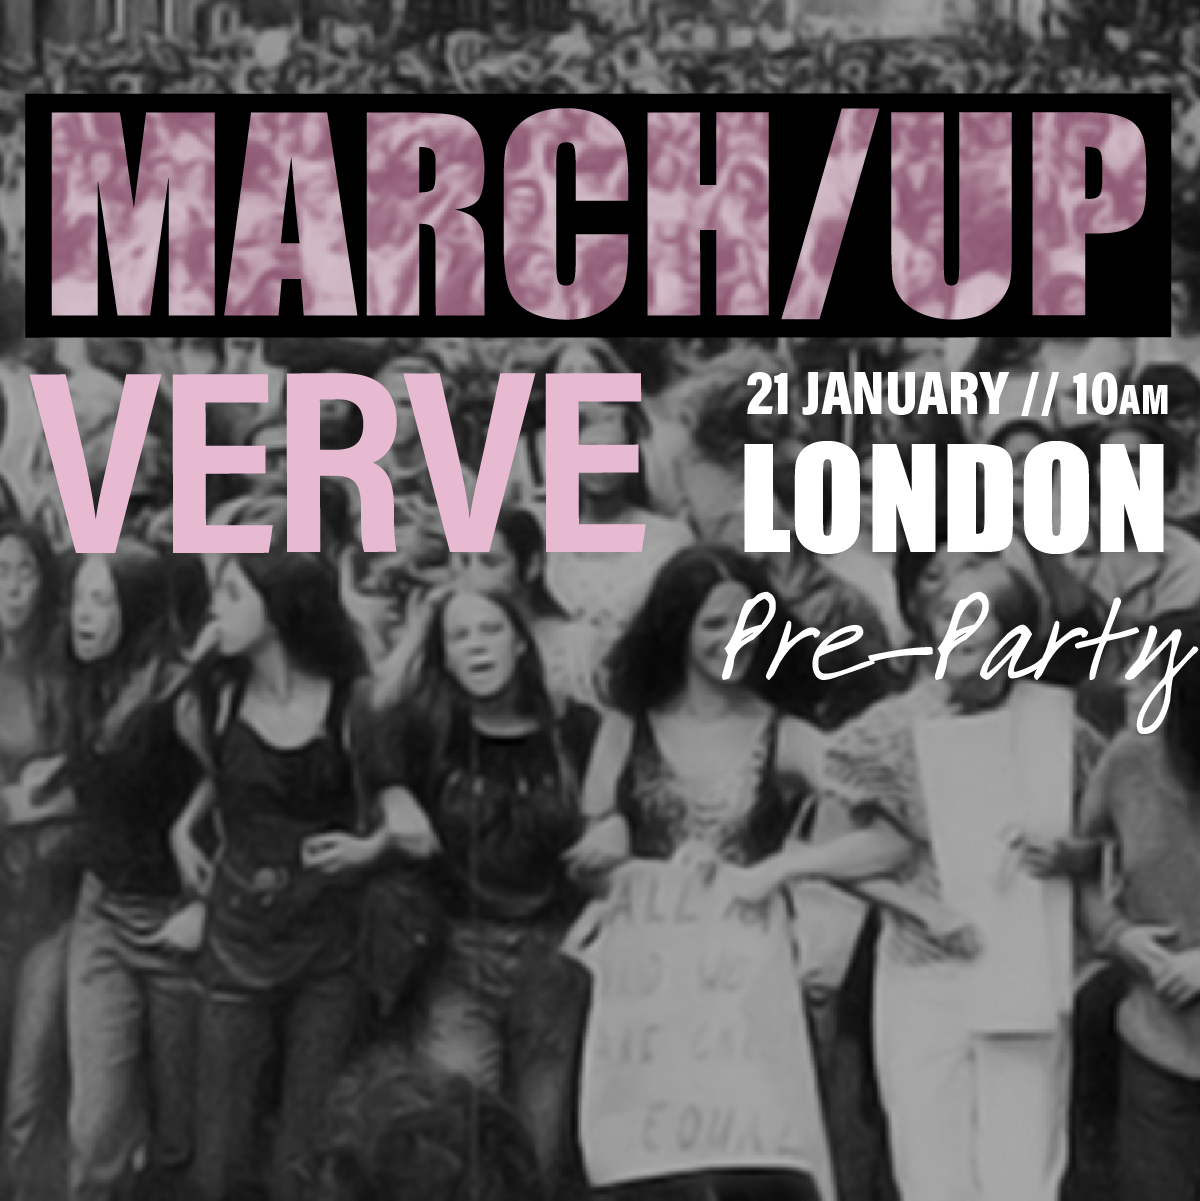 VERVE MARCH UP